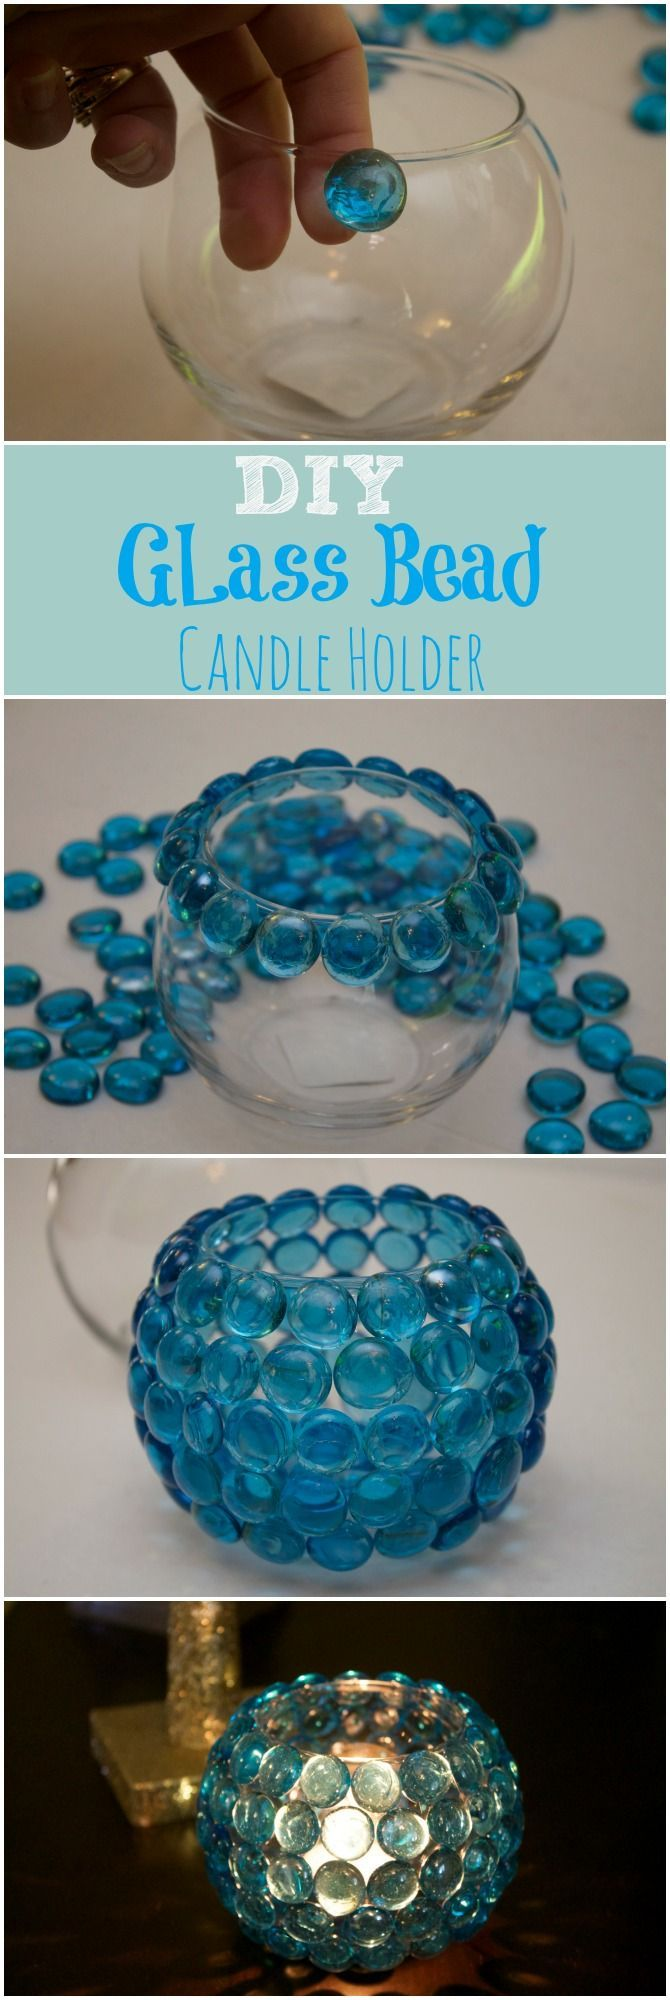 Best 25 dollar tree crafts ideas on pinterest diy candle diy glass bead candle holder super easy to make dollar store crafts are the solutioingenieria Image collections